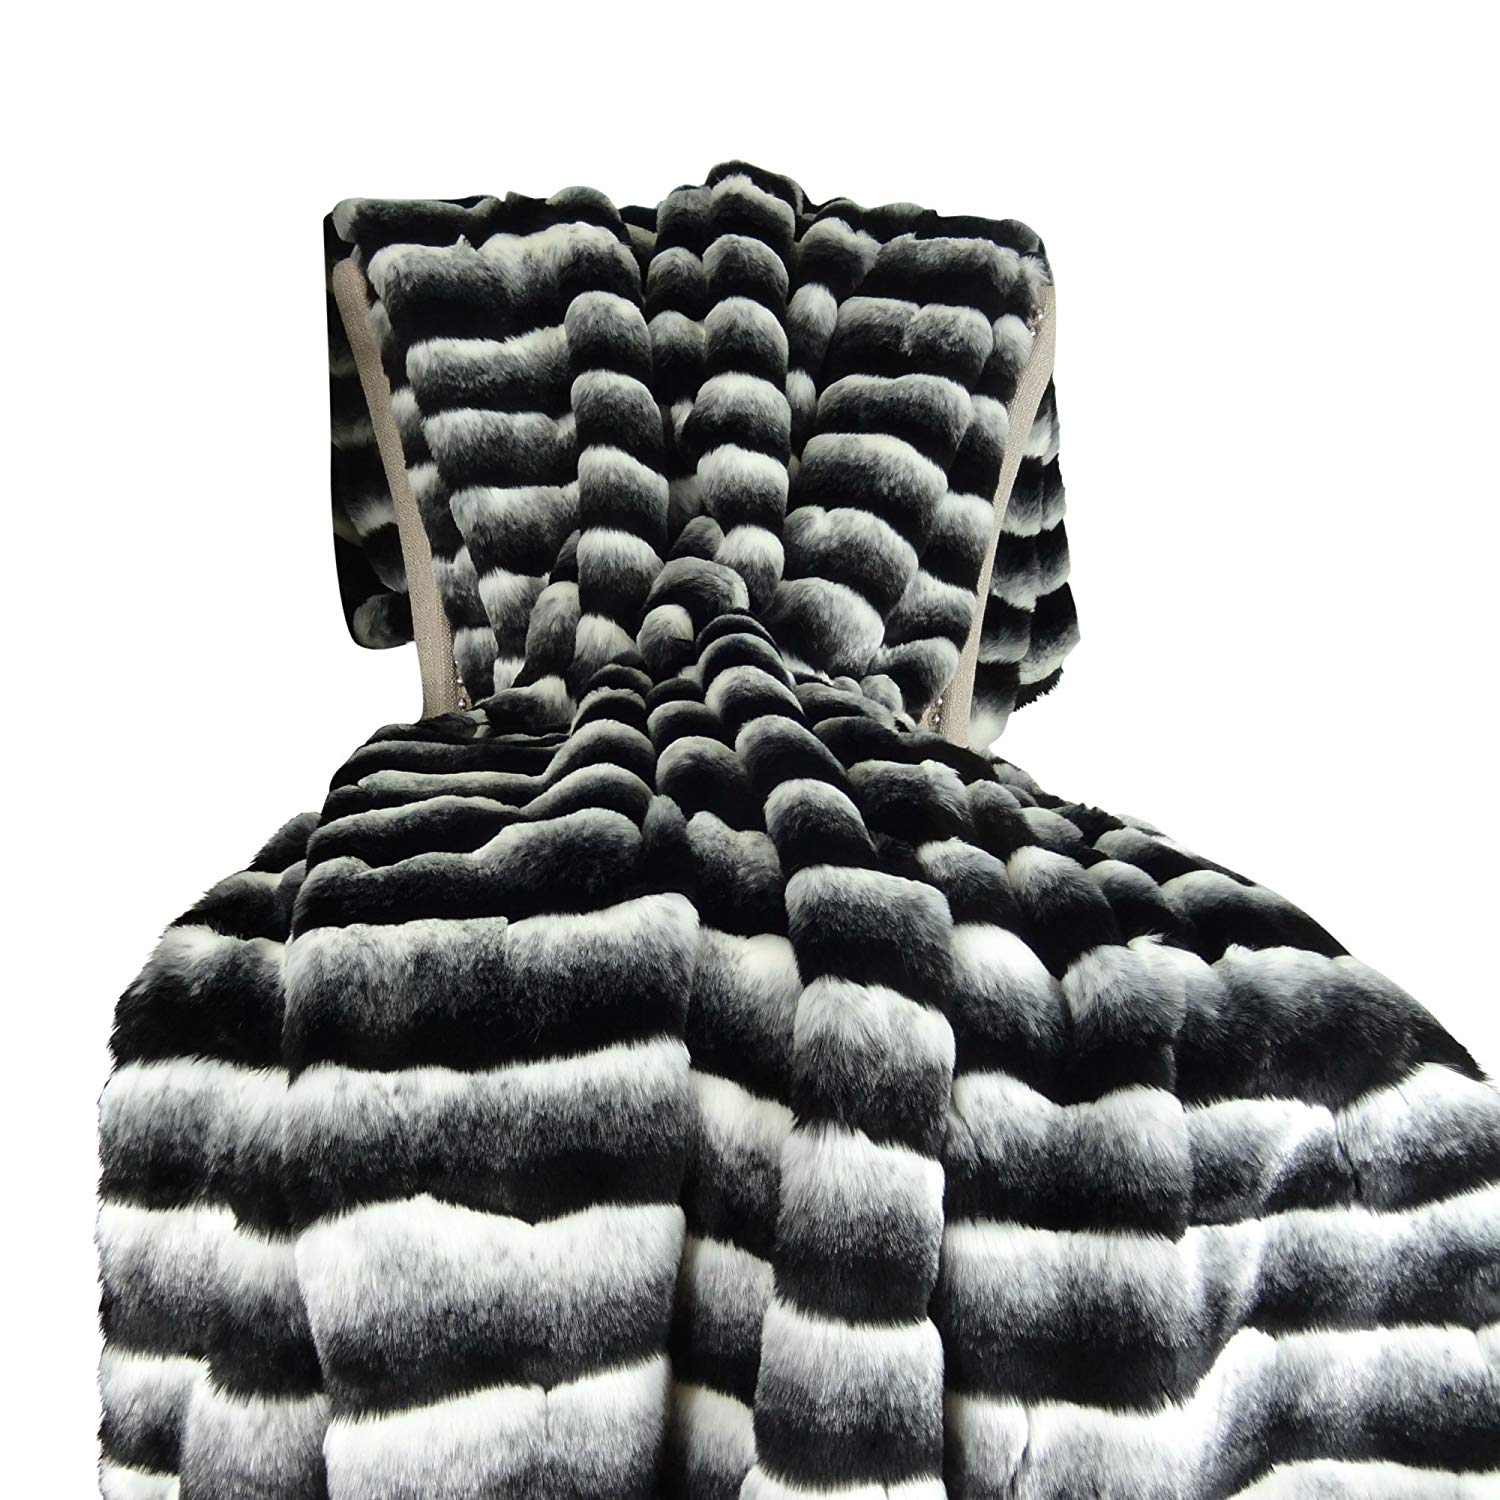 Thomas Collection Black White Chinchilla Faux Fur Throw Blanket & Bedspread - Black Chinchilla Fur - Black White Chinchilla Throw Blanket - Fur Blanket, Made in USA, 16432